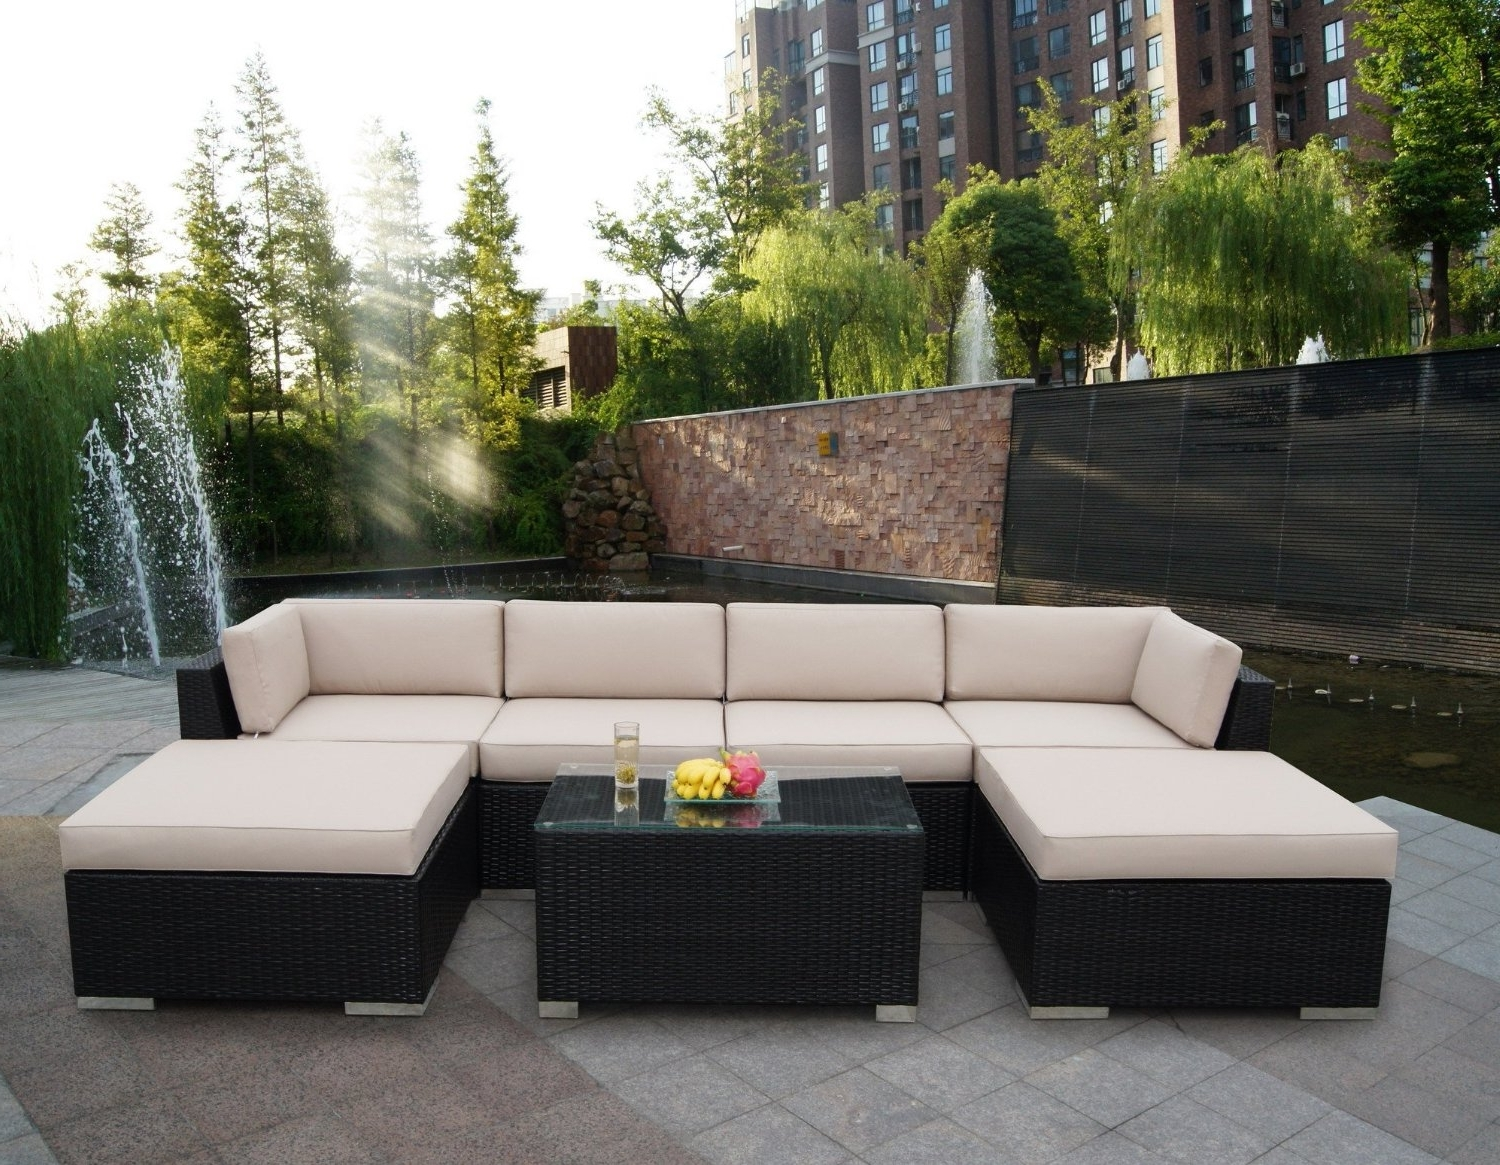 Patio Sofas Inside Most Up To Date Enjoy Having Outdoor Patio Sets At Your Lawn – Bellissimainteriors (View 14 of 15)